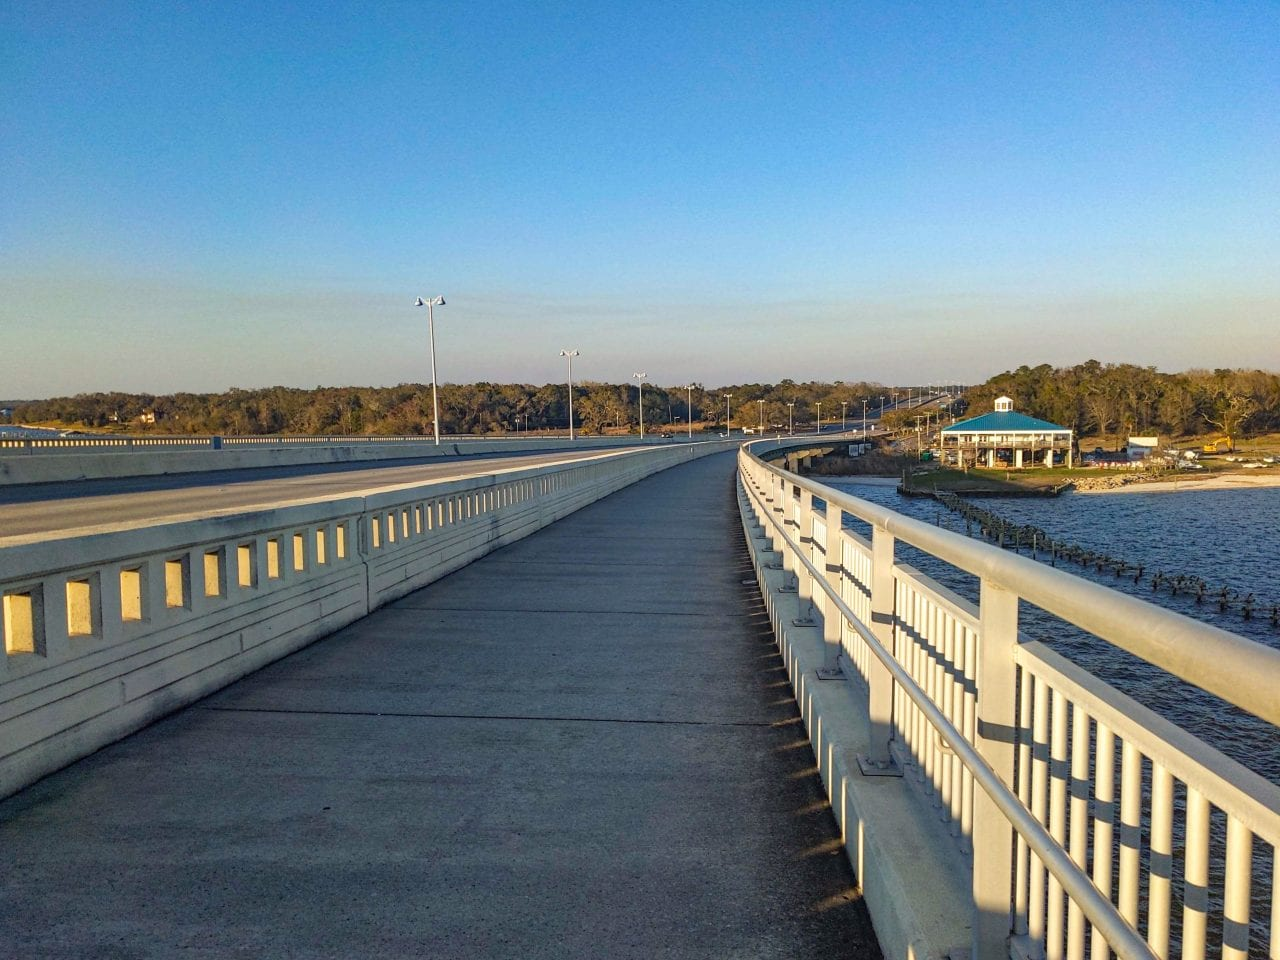 View from the bike lanes of the Biloxi Bay Bridge